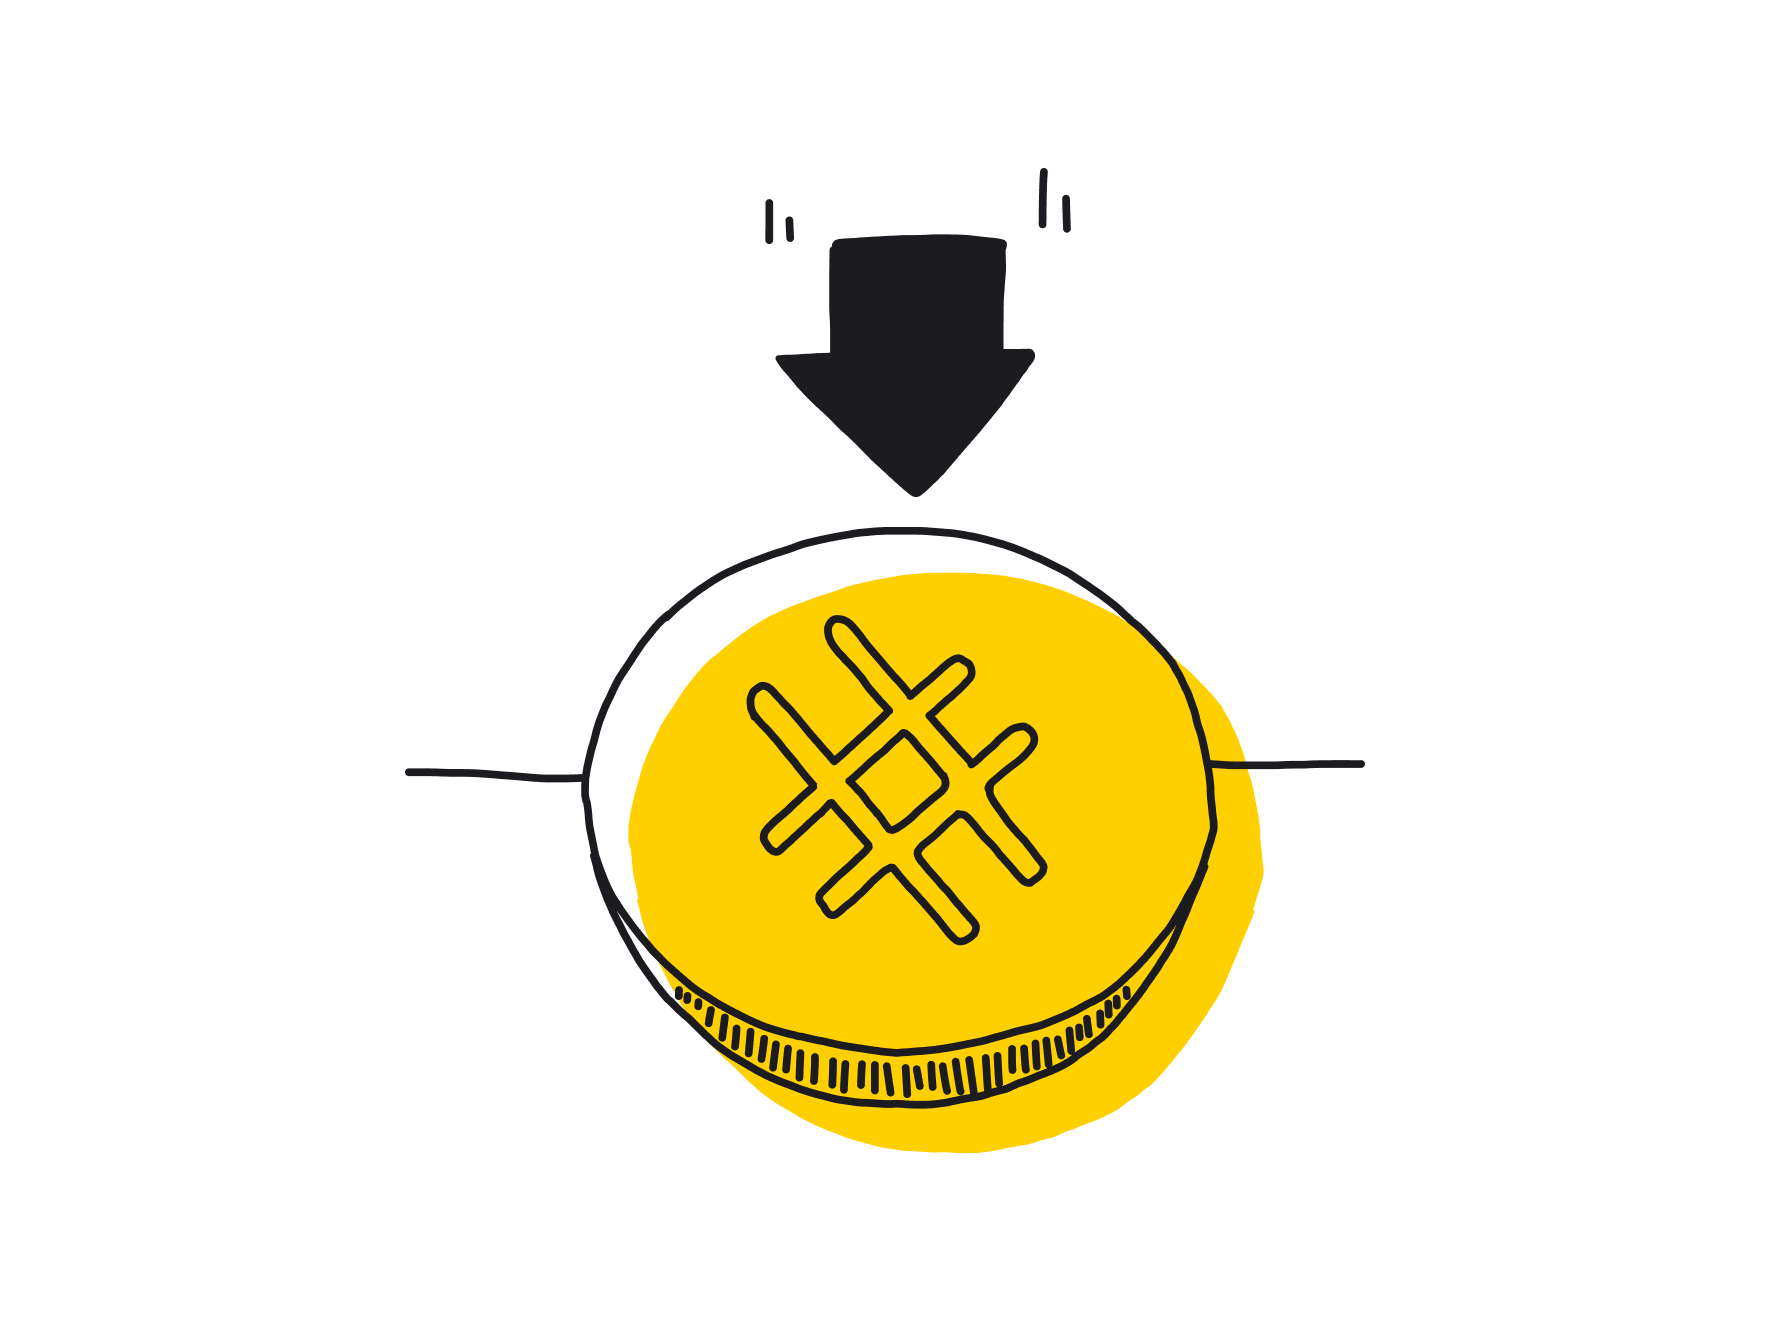 Illustration: A button with a hash with an arrow pointing at it